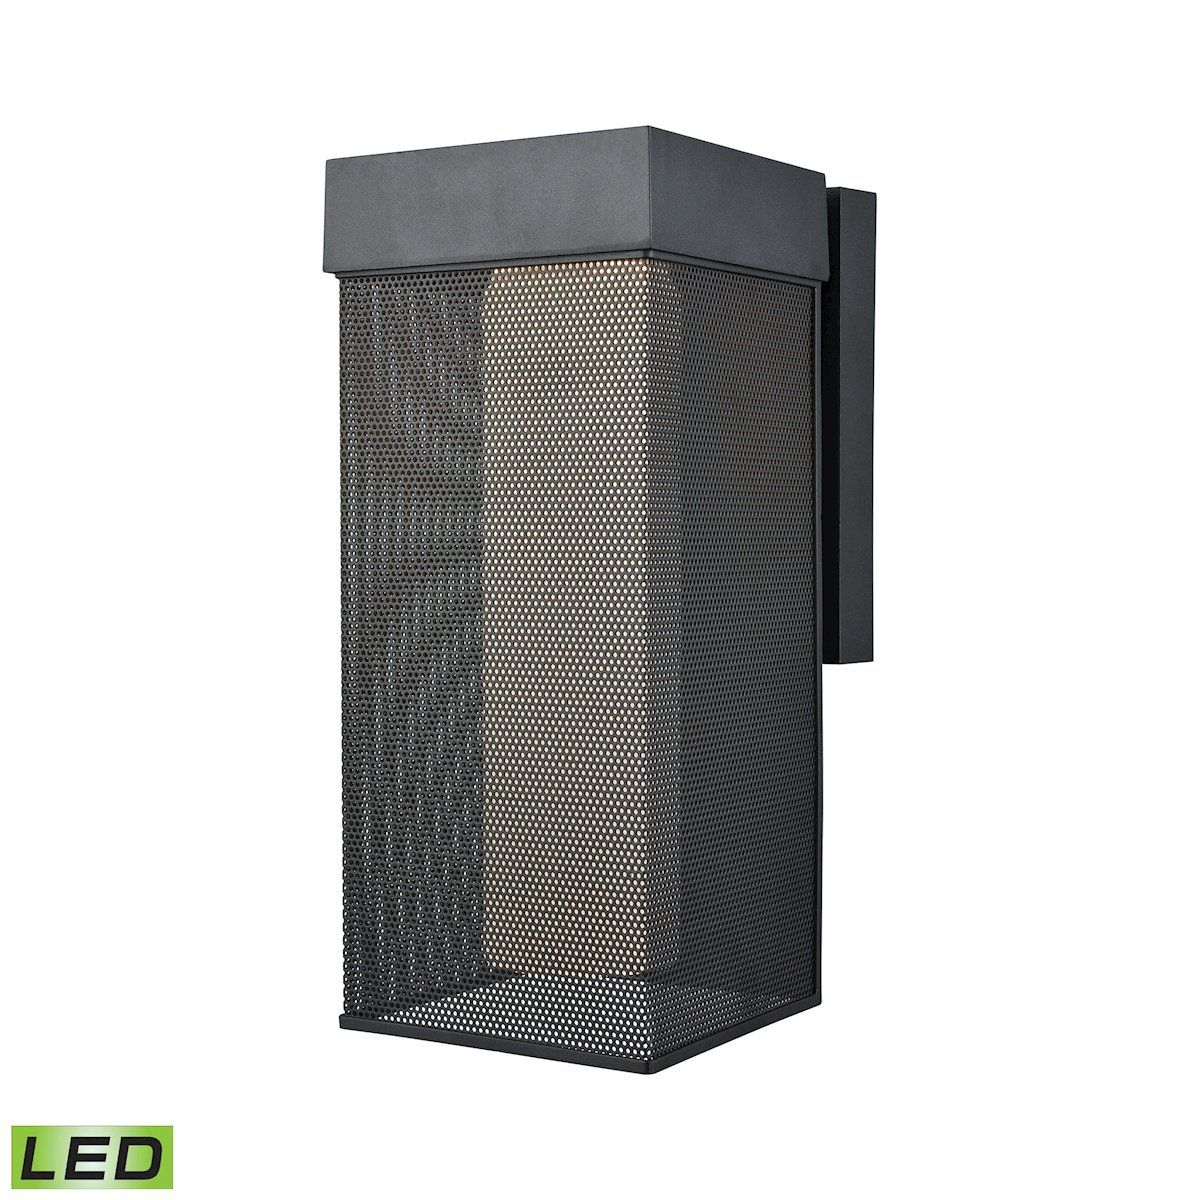 Estacada dimmable led outdoor wall sconce in matte black with opal